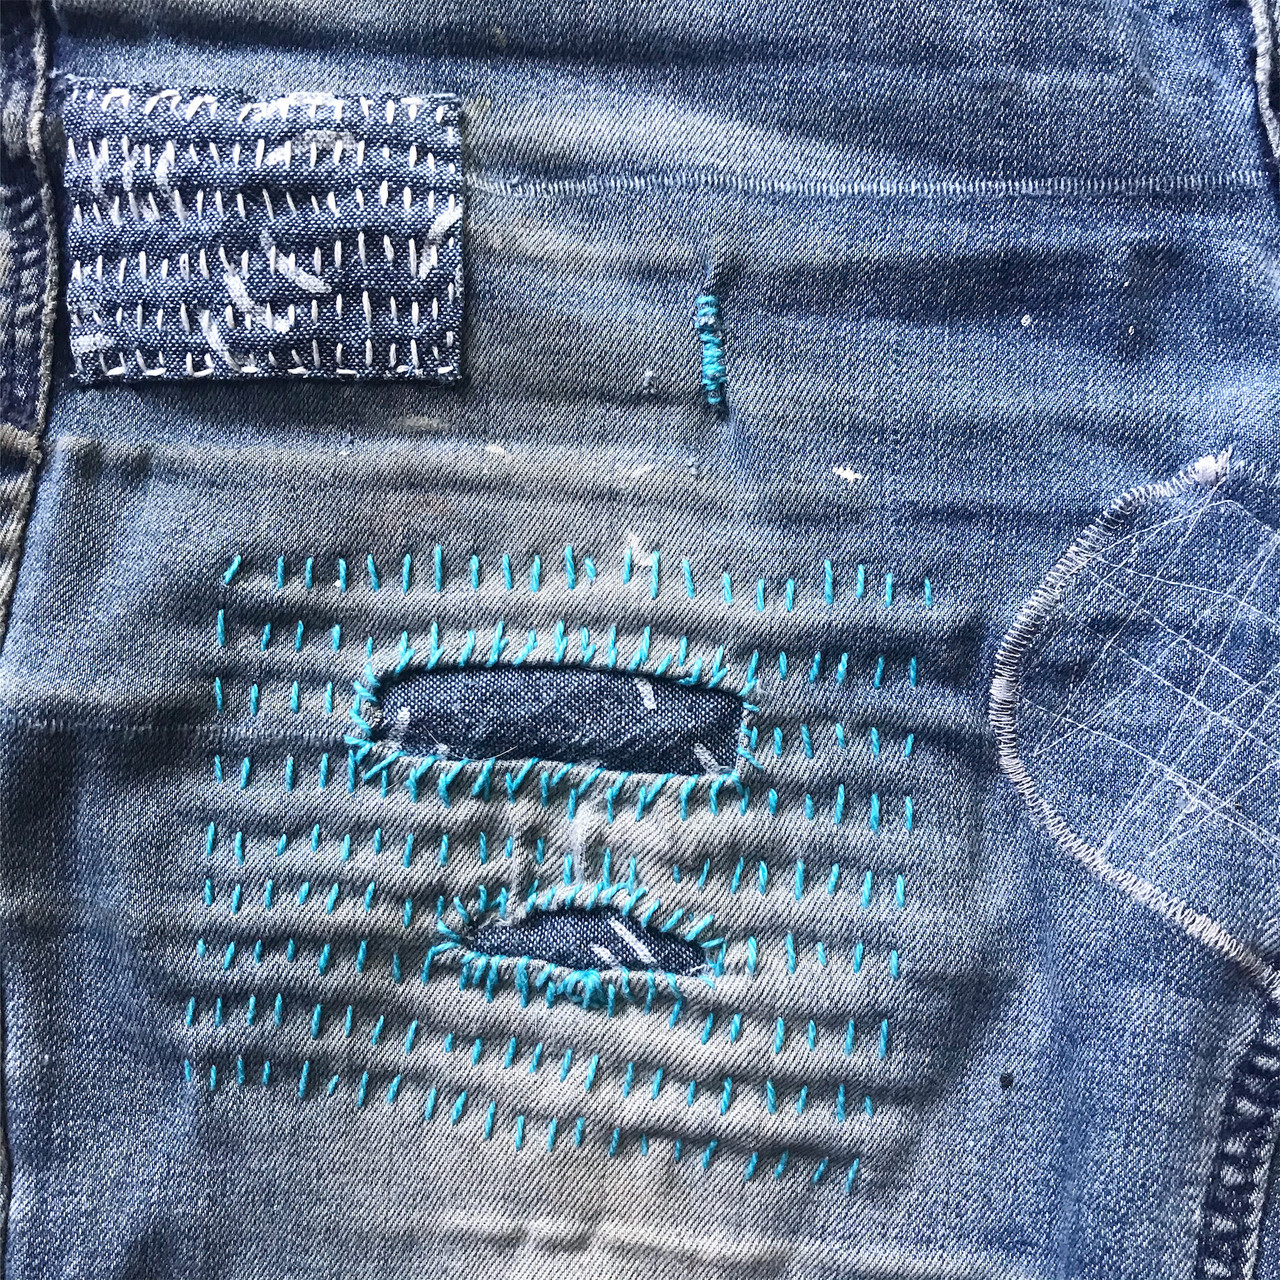 Close-up detail image of a pair of artfully mended jeans.